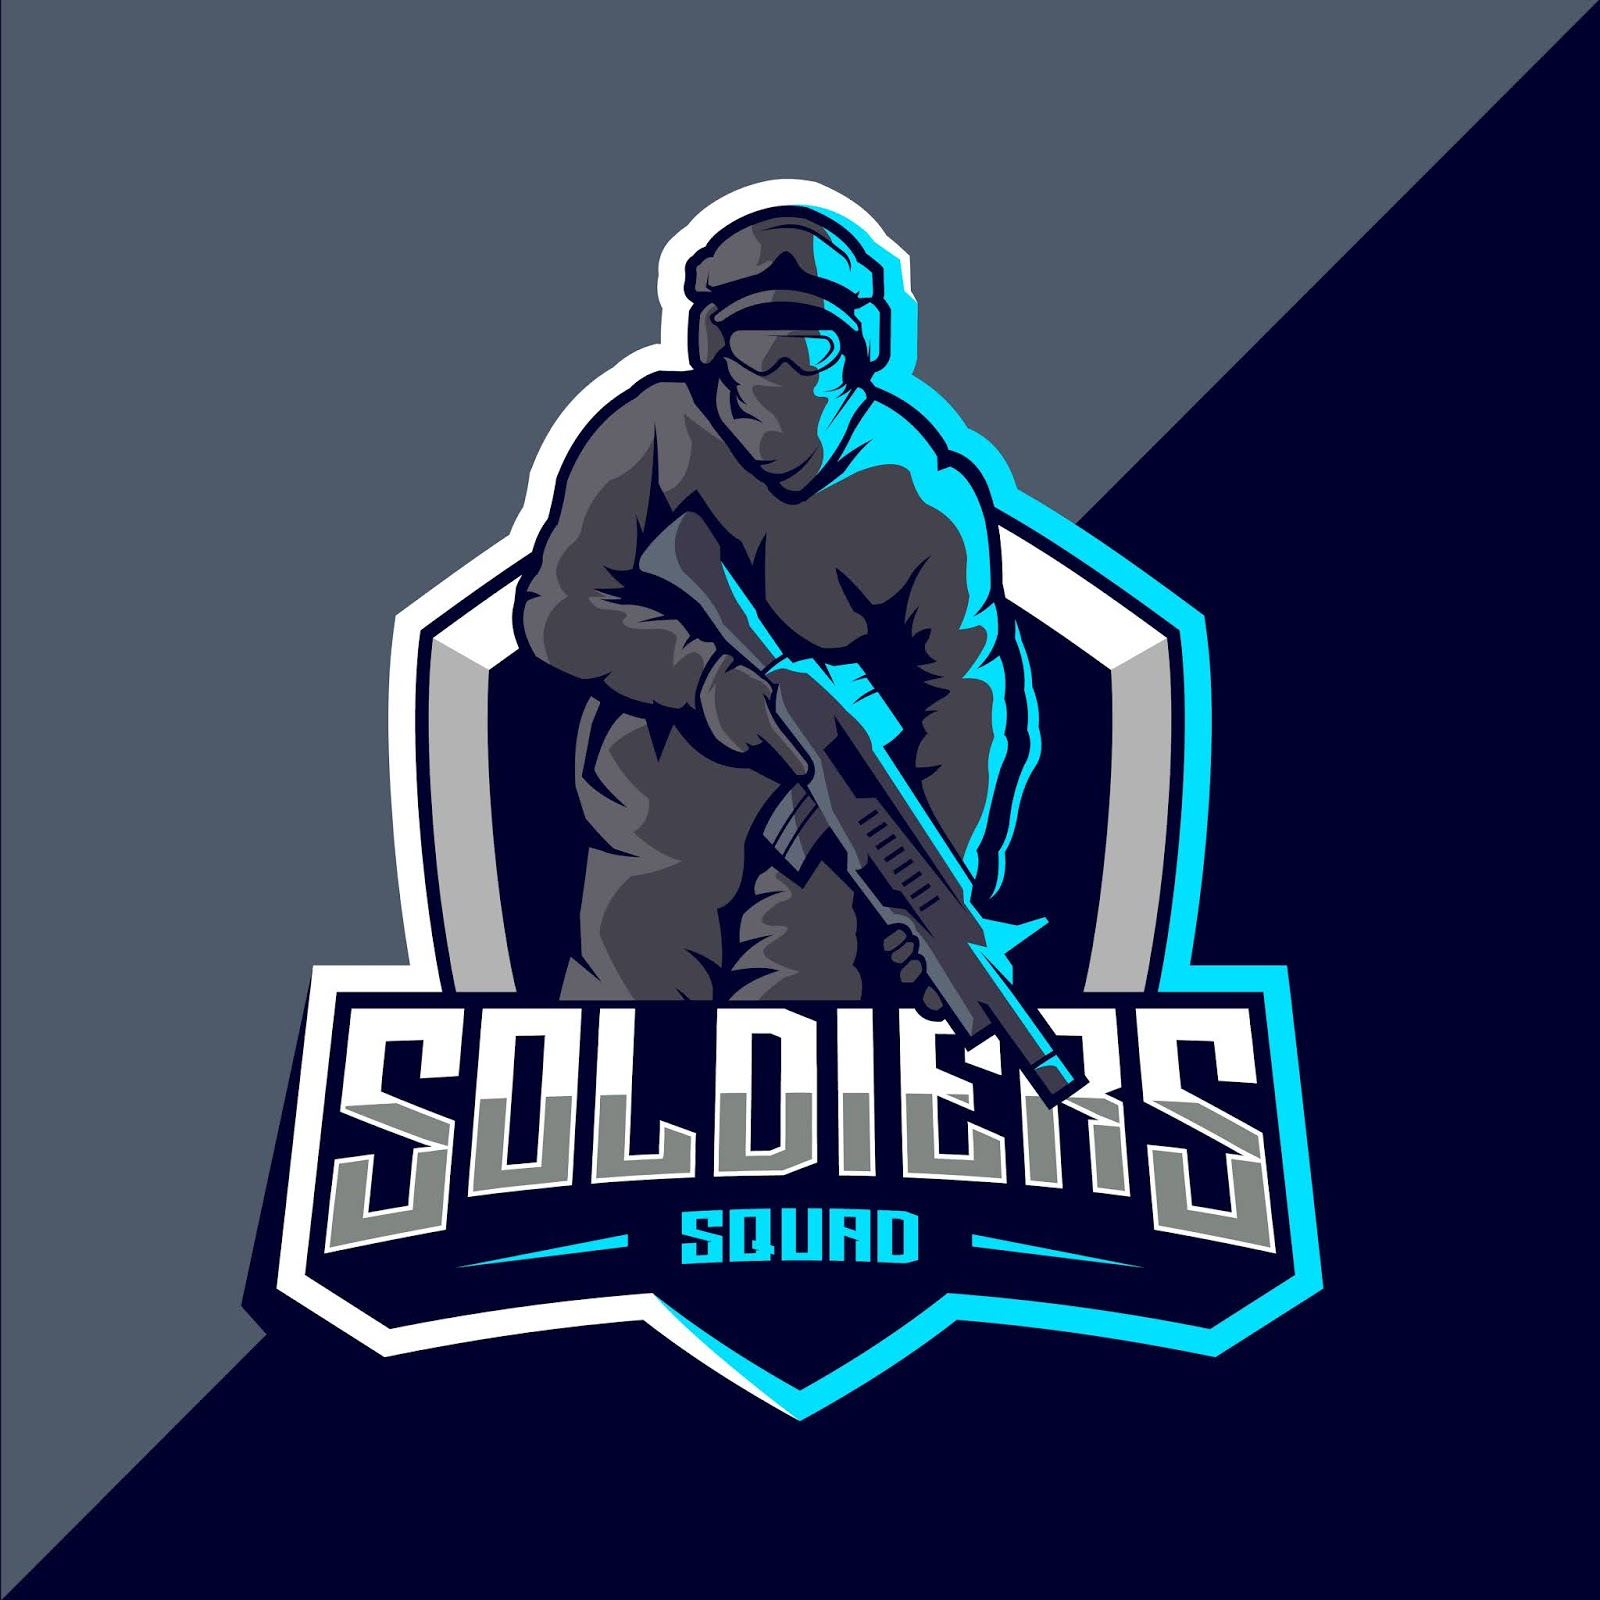 Soldier Mascot Esport Logo Design Free Download Vector CDR, AI, EPS and PNG Formats